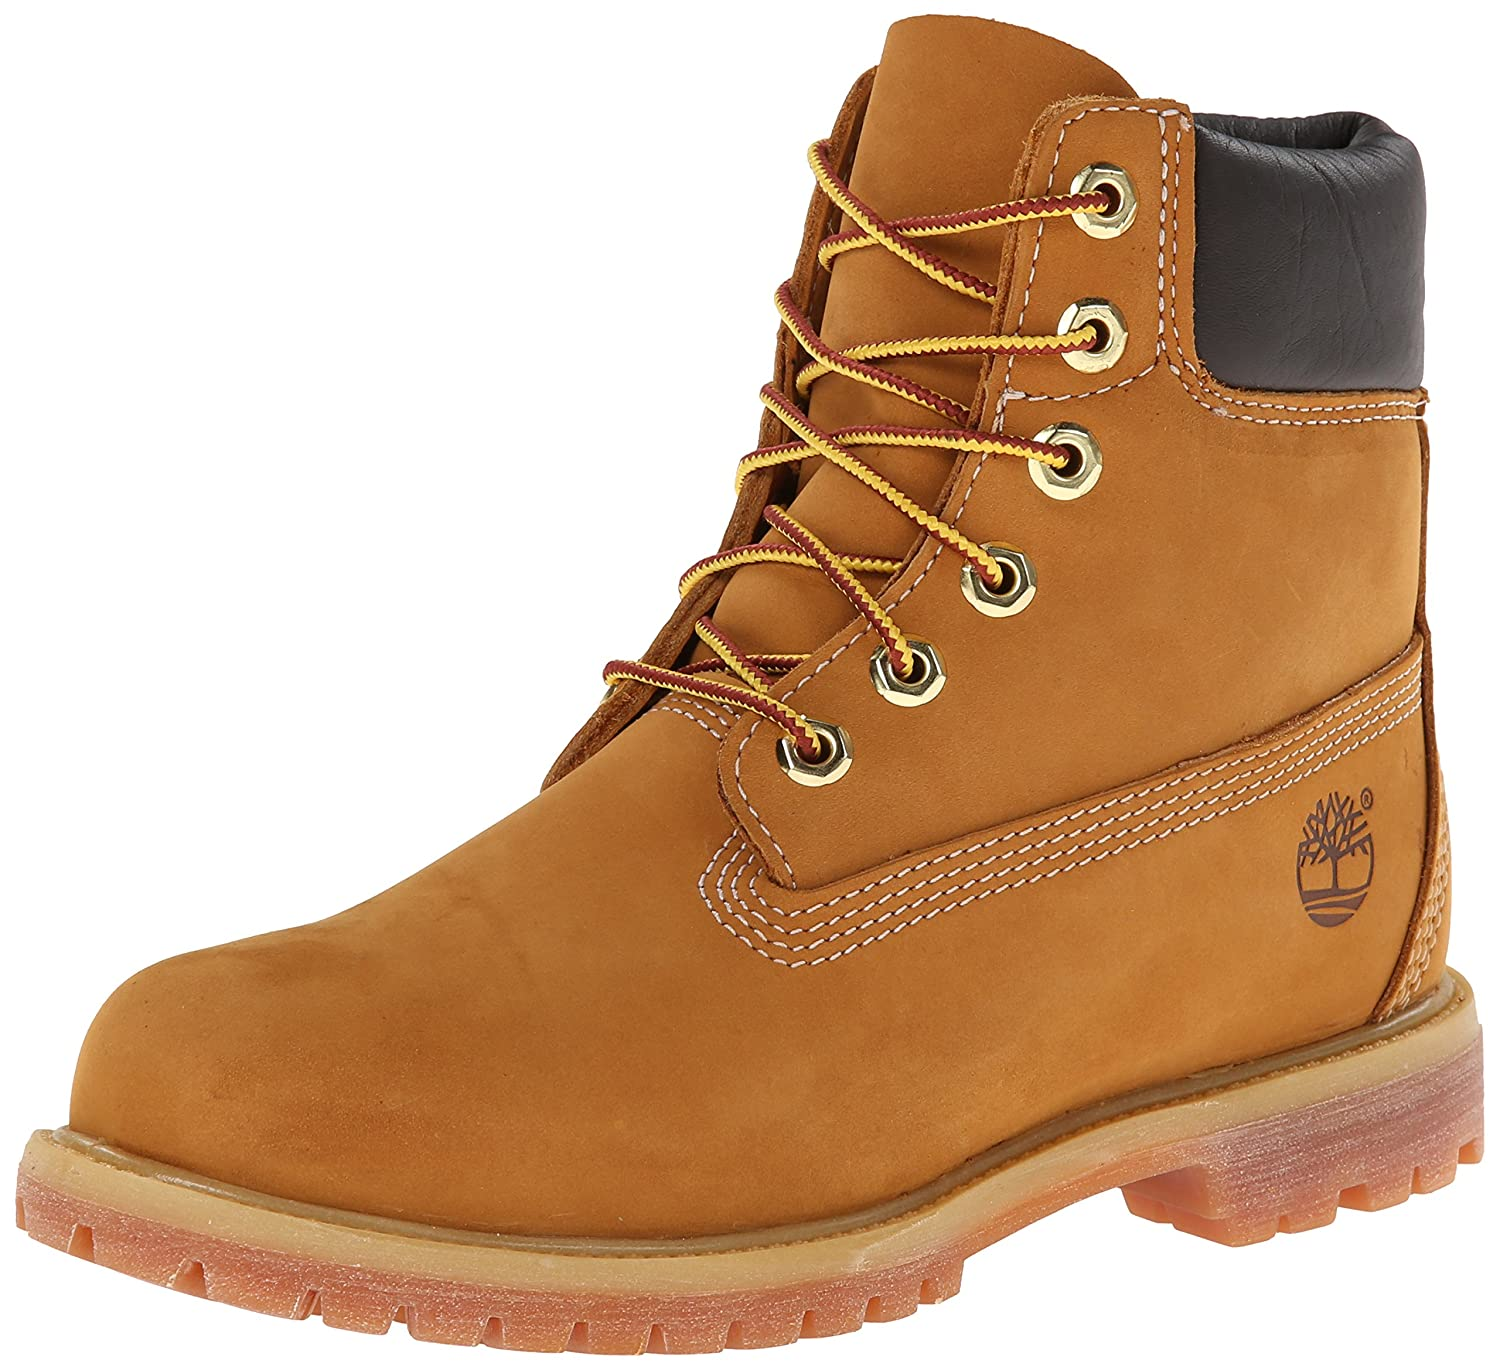 60201a069 Timberland 6 In Premium Waterproof (Wide Fit)